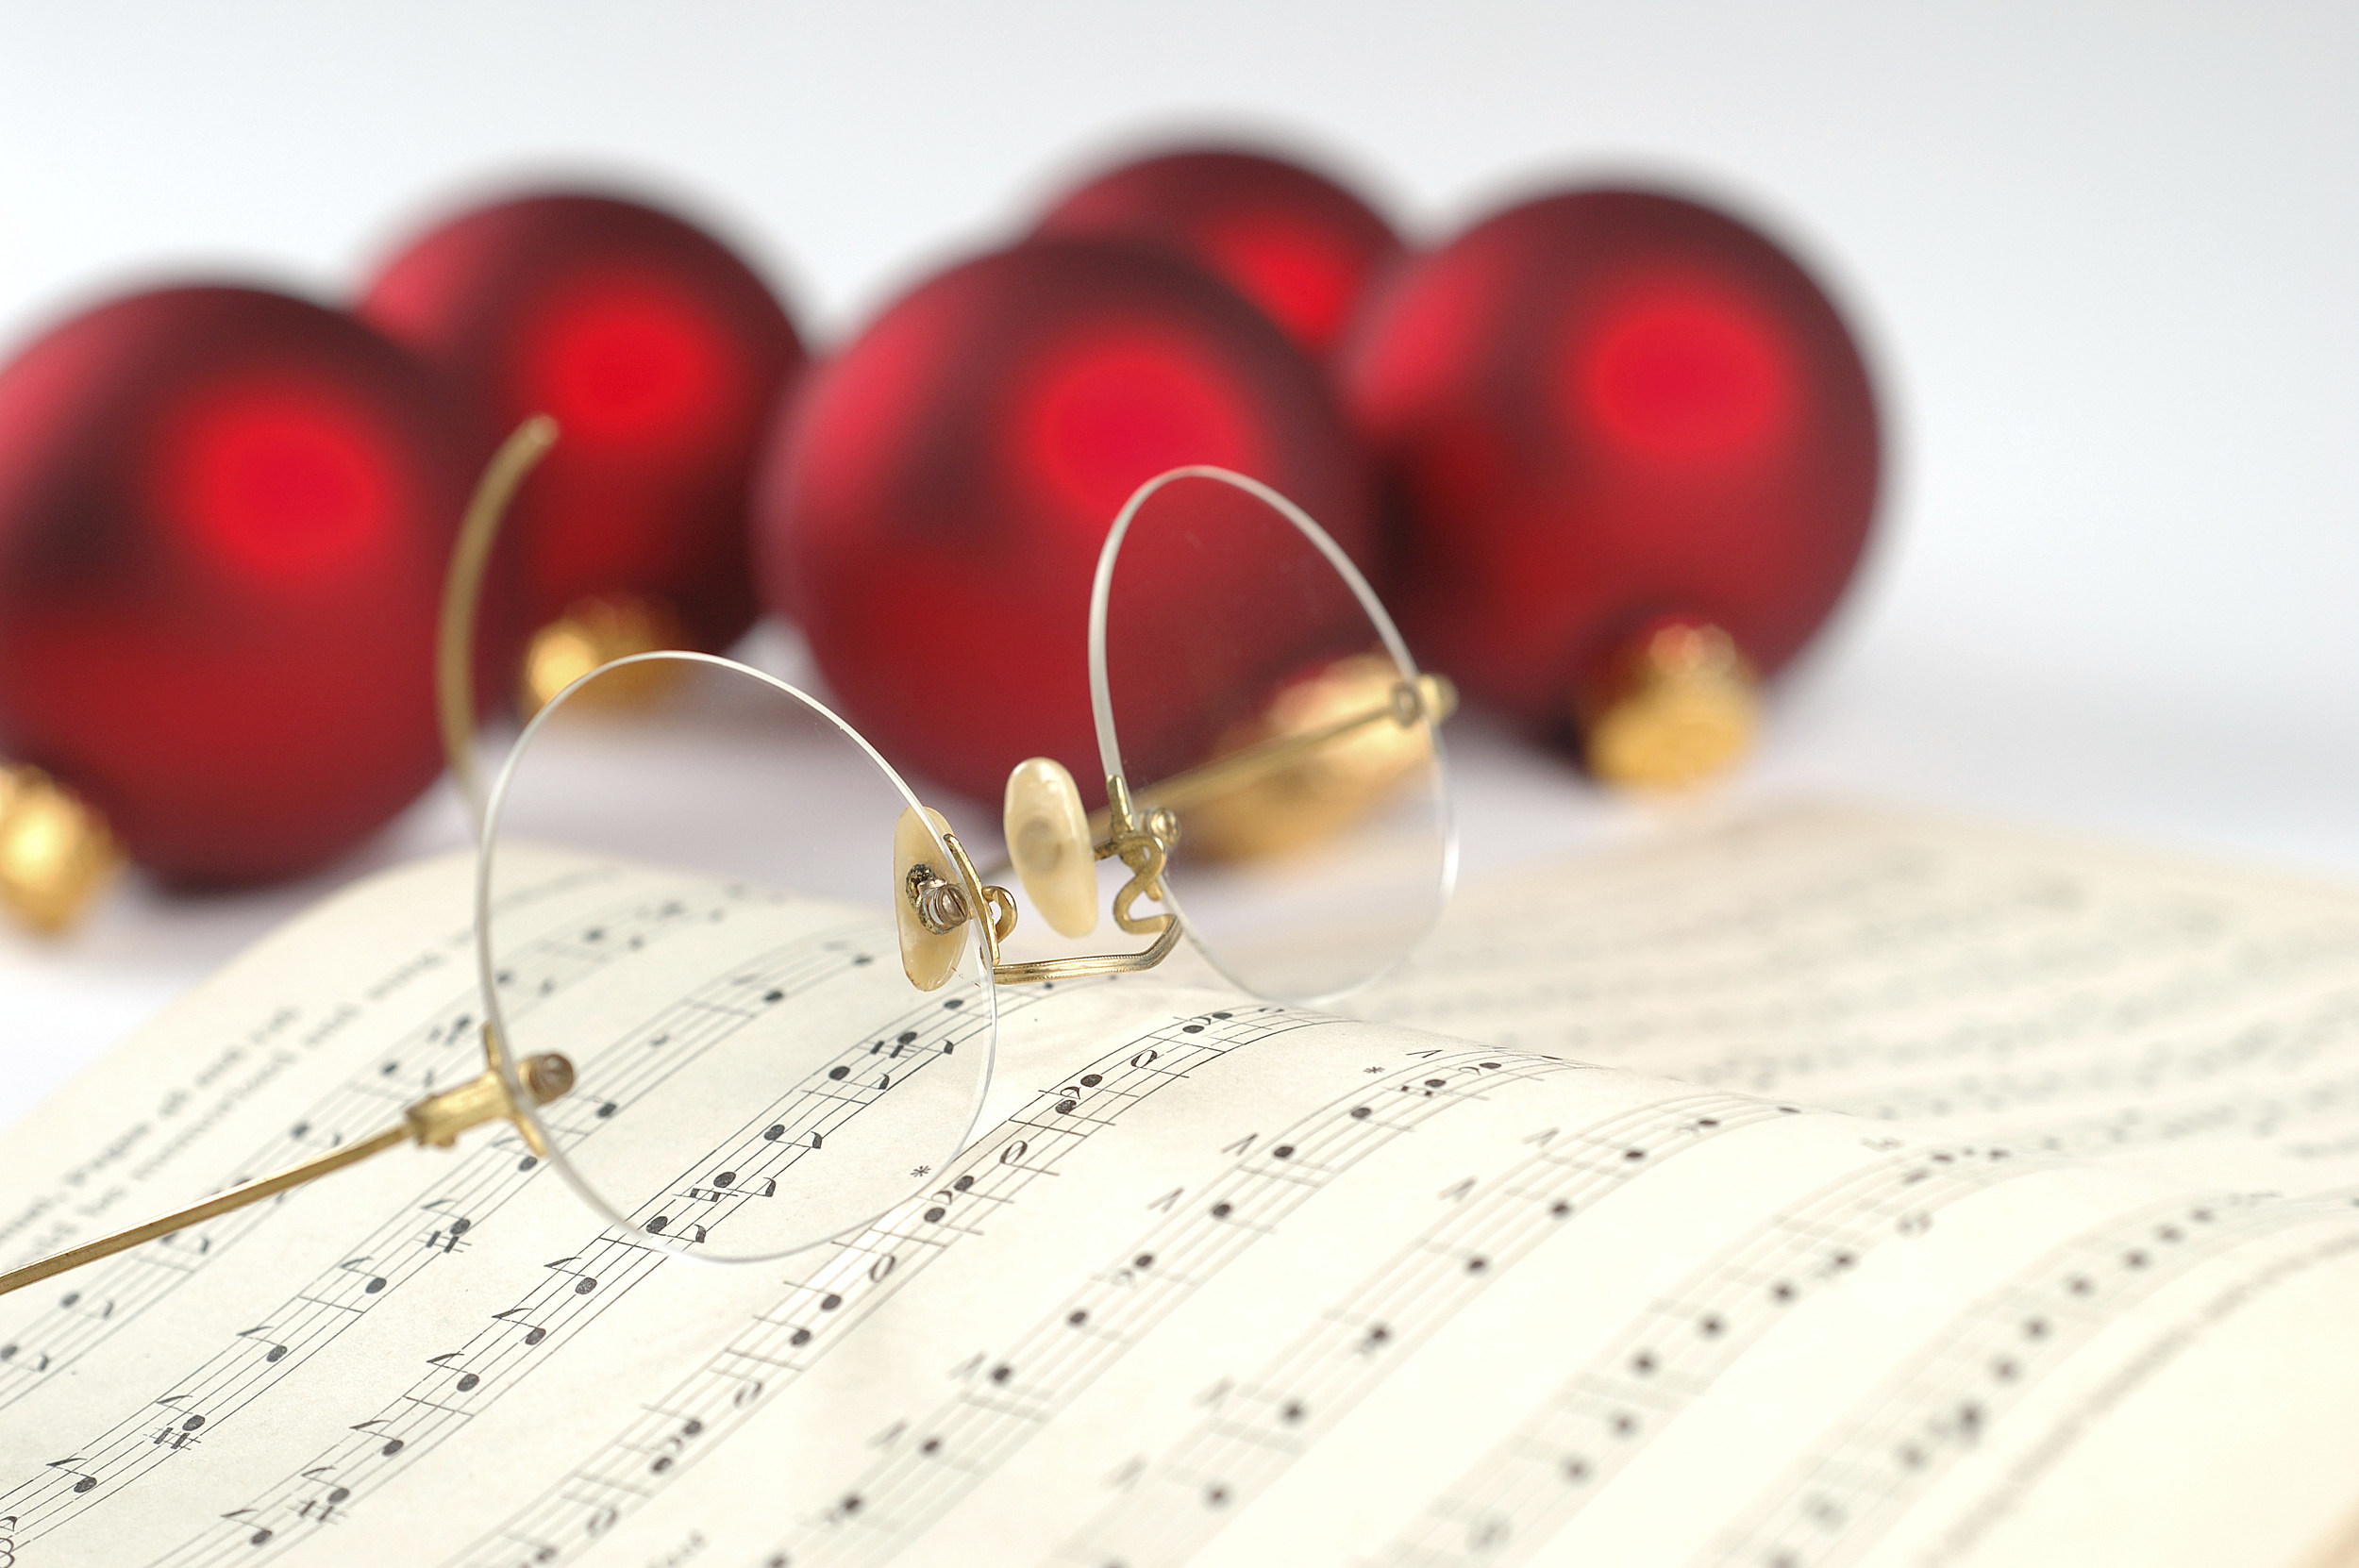 Top 40 Christmas Songs - 94.3 The Point